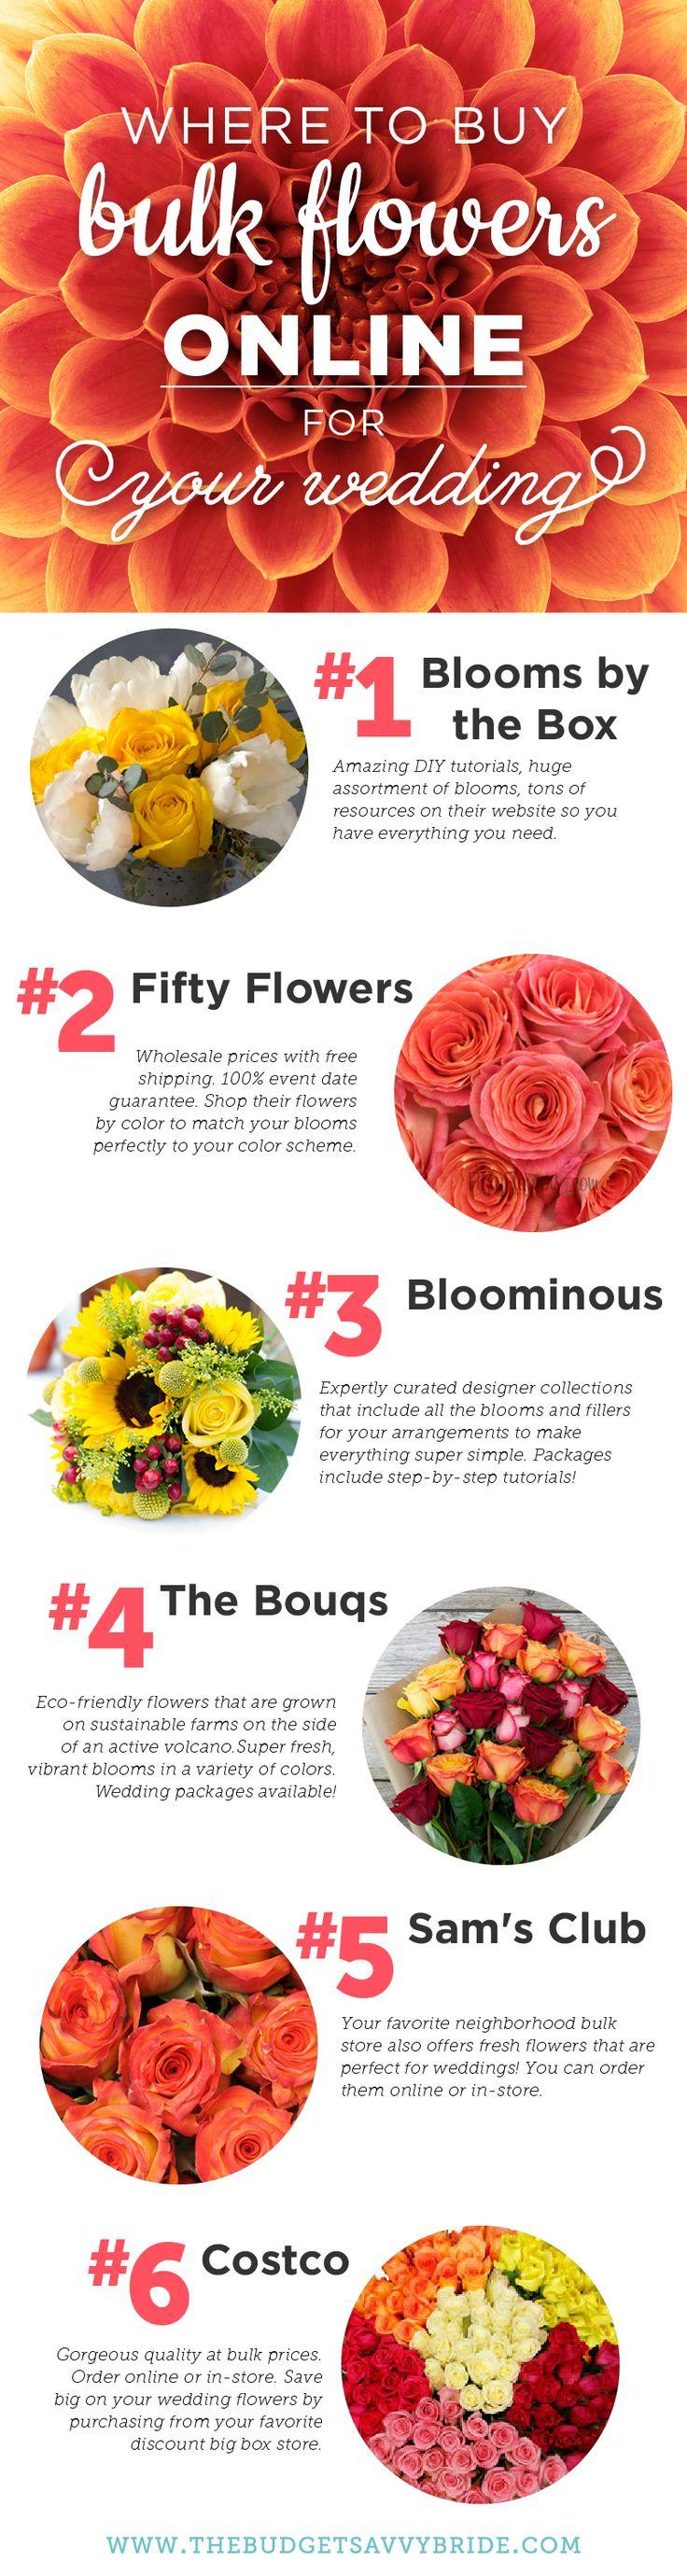 Wedding Where To Buy Bulk Flowers Online For Your Wedding